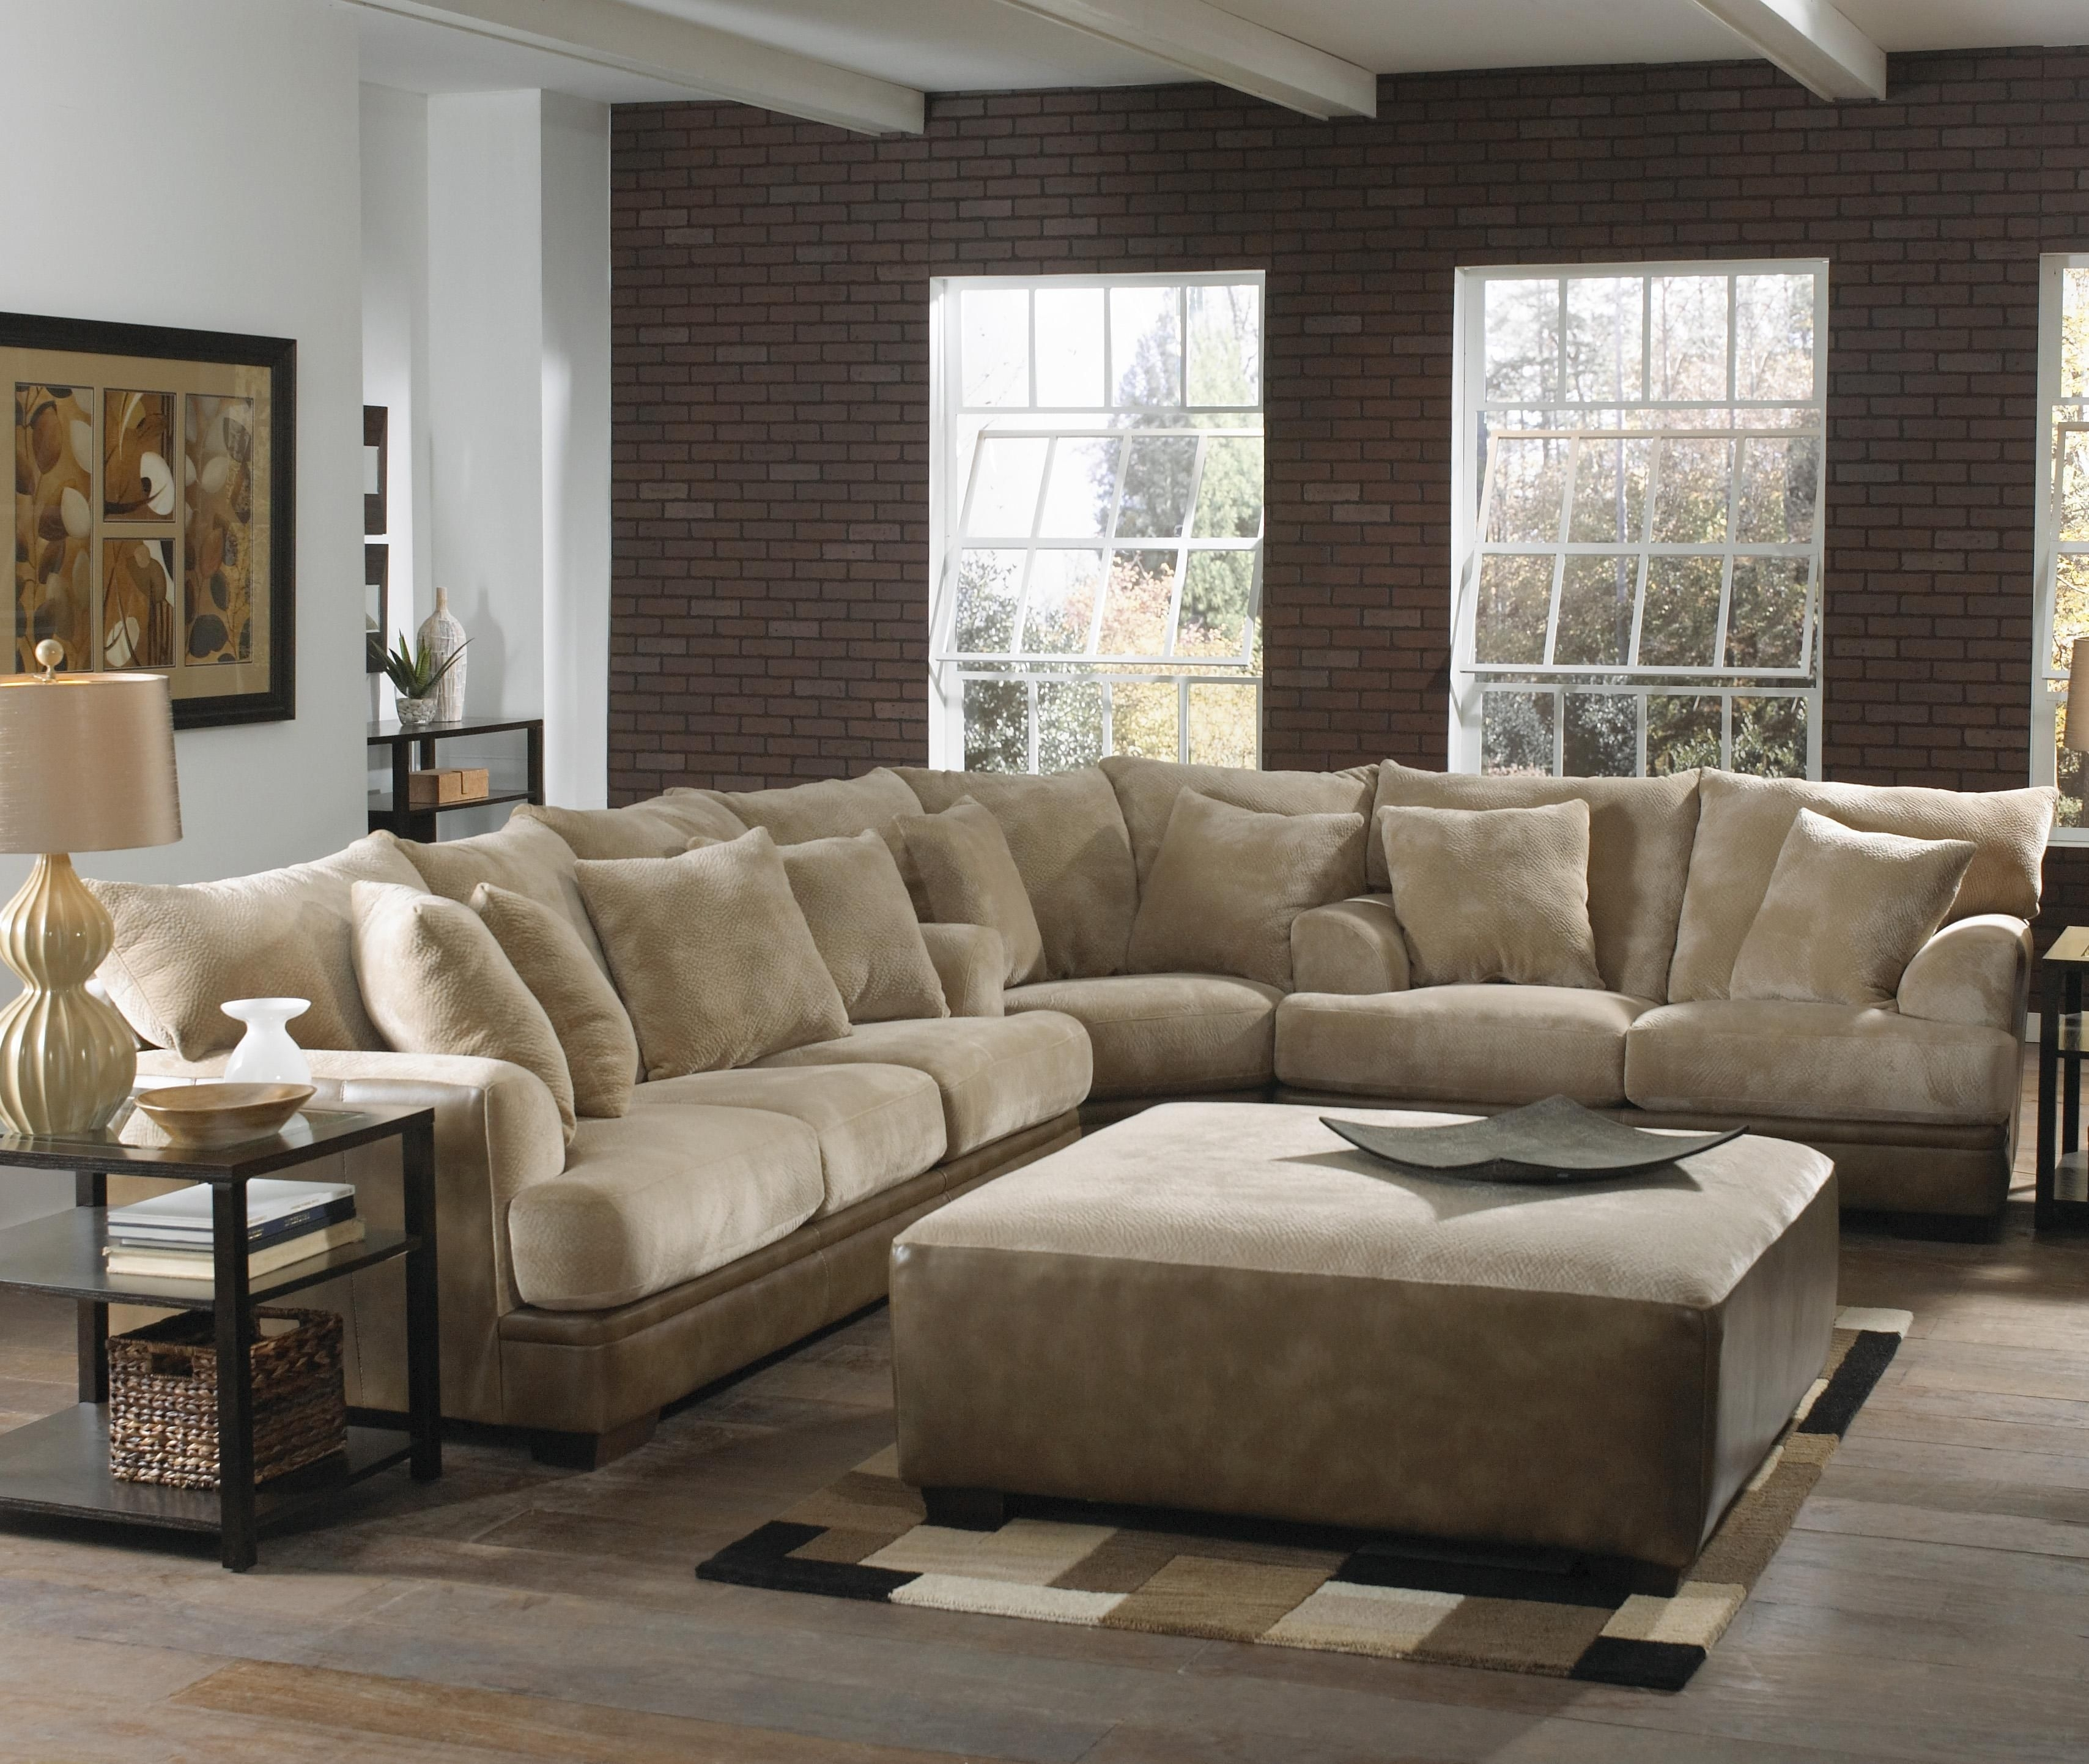 Barkley Large L Shaped Sectional Sofa With Right Side Loveseat Pertaining To Jackson Tn Sectional Sofas (Image 3 of 10)